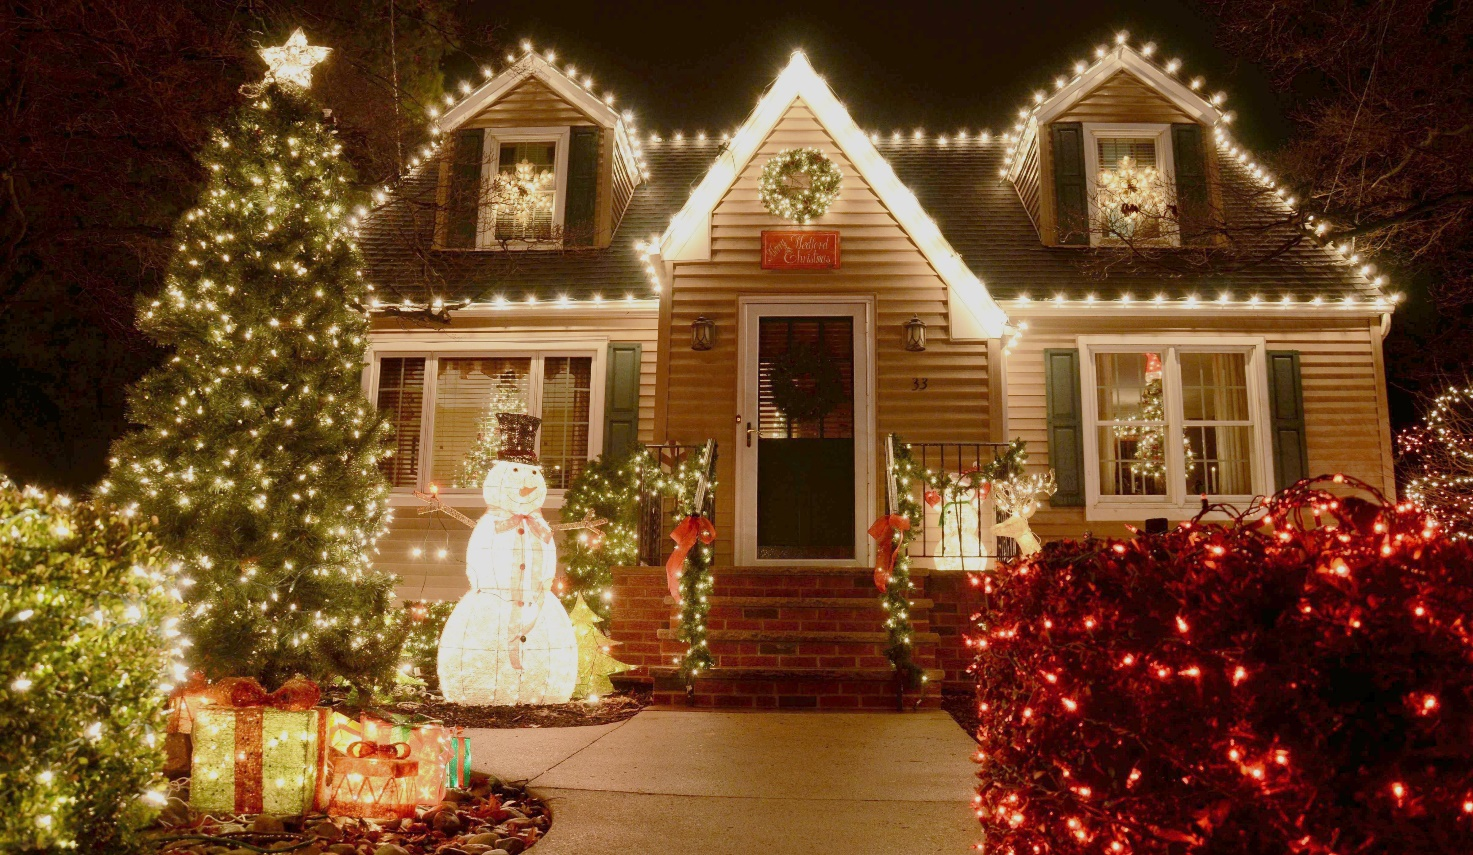 Bright outdoor Christmas decorations